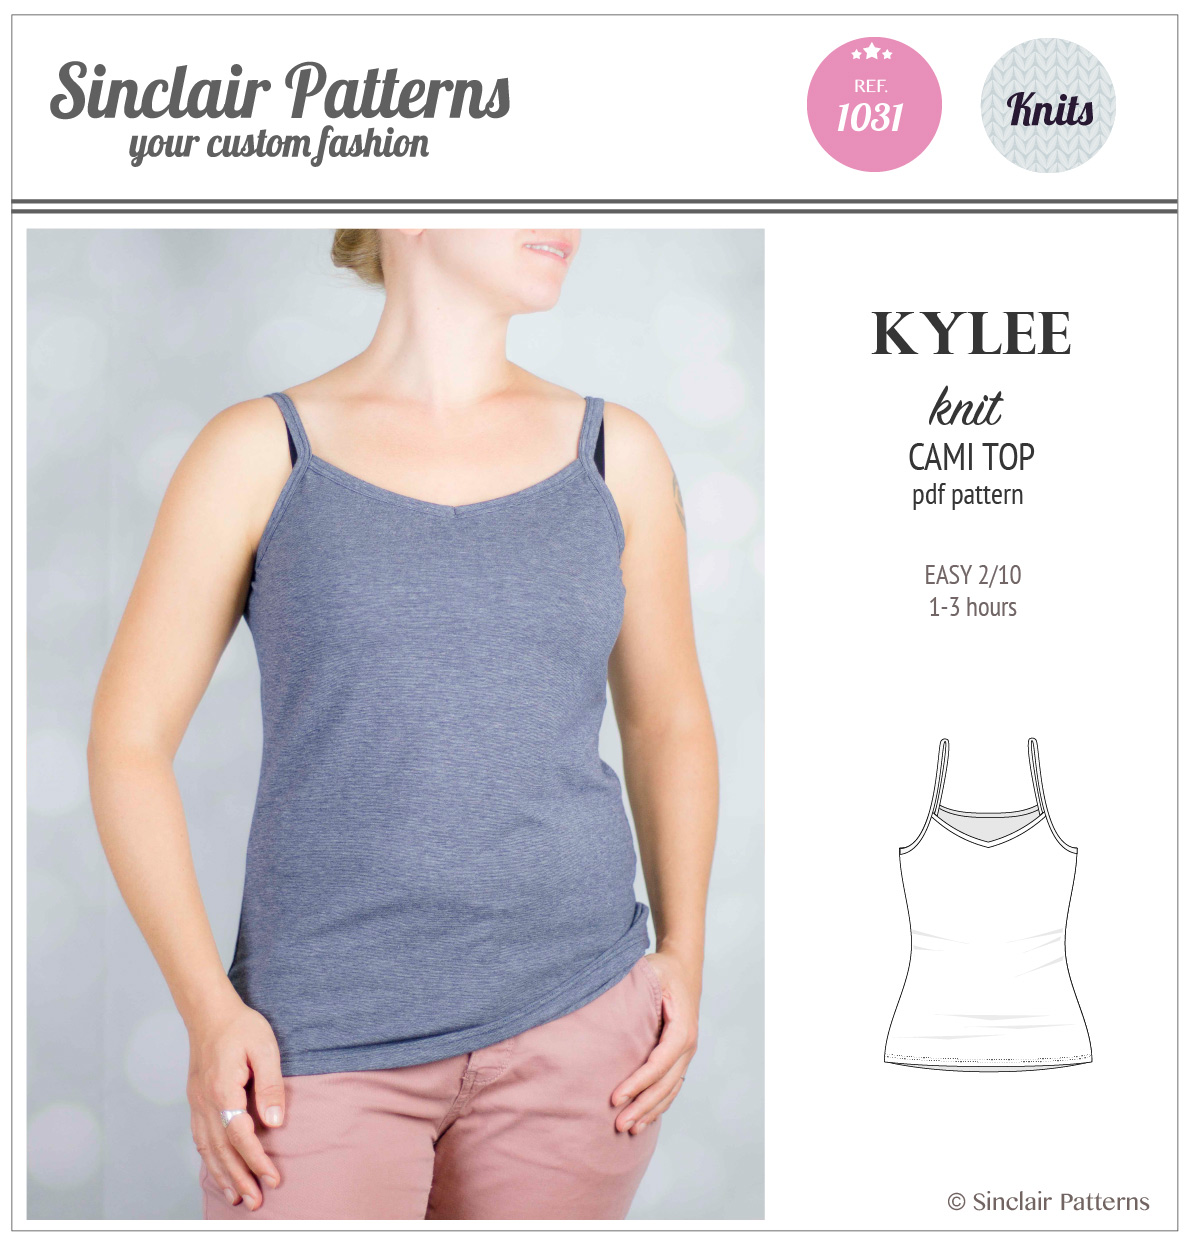 Kylee knit classic cami top (PDF) – Sinclair patterns